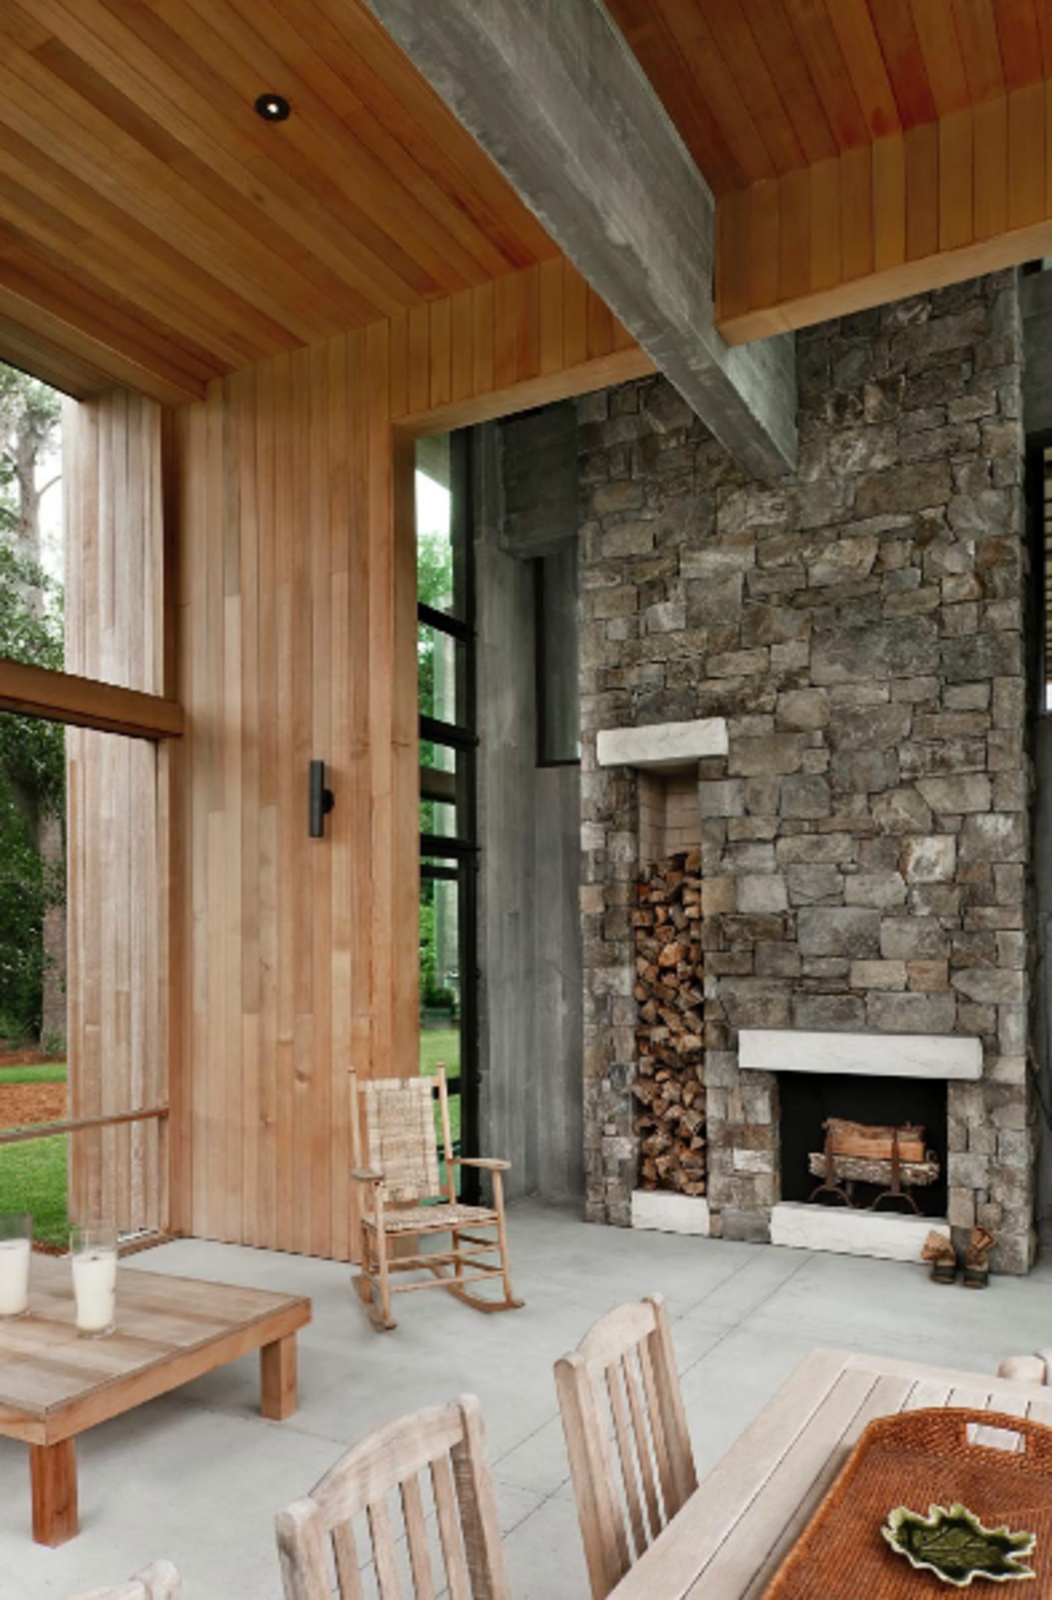 Choate selected maintenance-free materials for the project wherever possible, including the stone on this fireplace, which includes built-in storage for firewood. The stone extends 25 feet up to the wood-clad ceiling, emphasizing the home's grand scale.  97+ Modern Fireplace Ideas from A Modern Home in a South Carolina Marsh